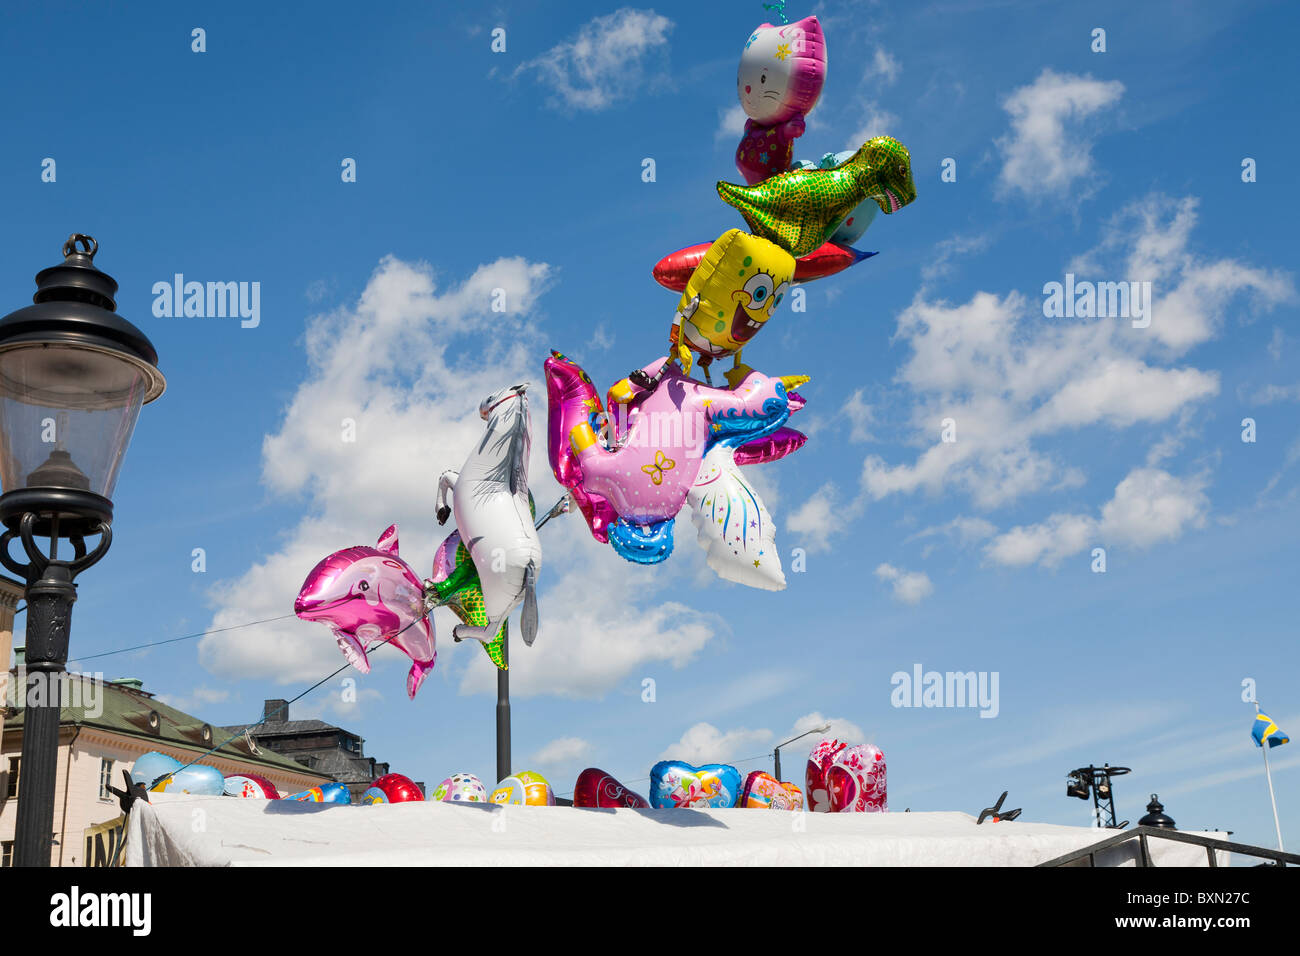 Baloons dans l'air Photo Stock